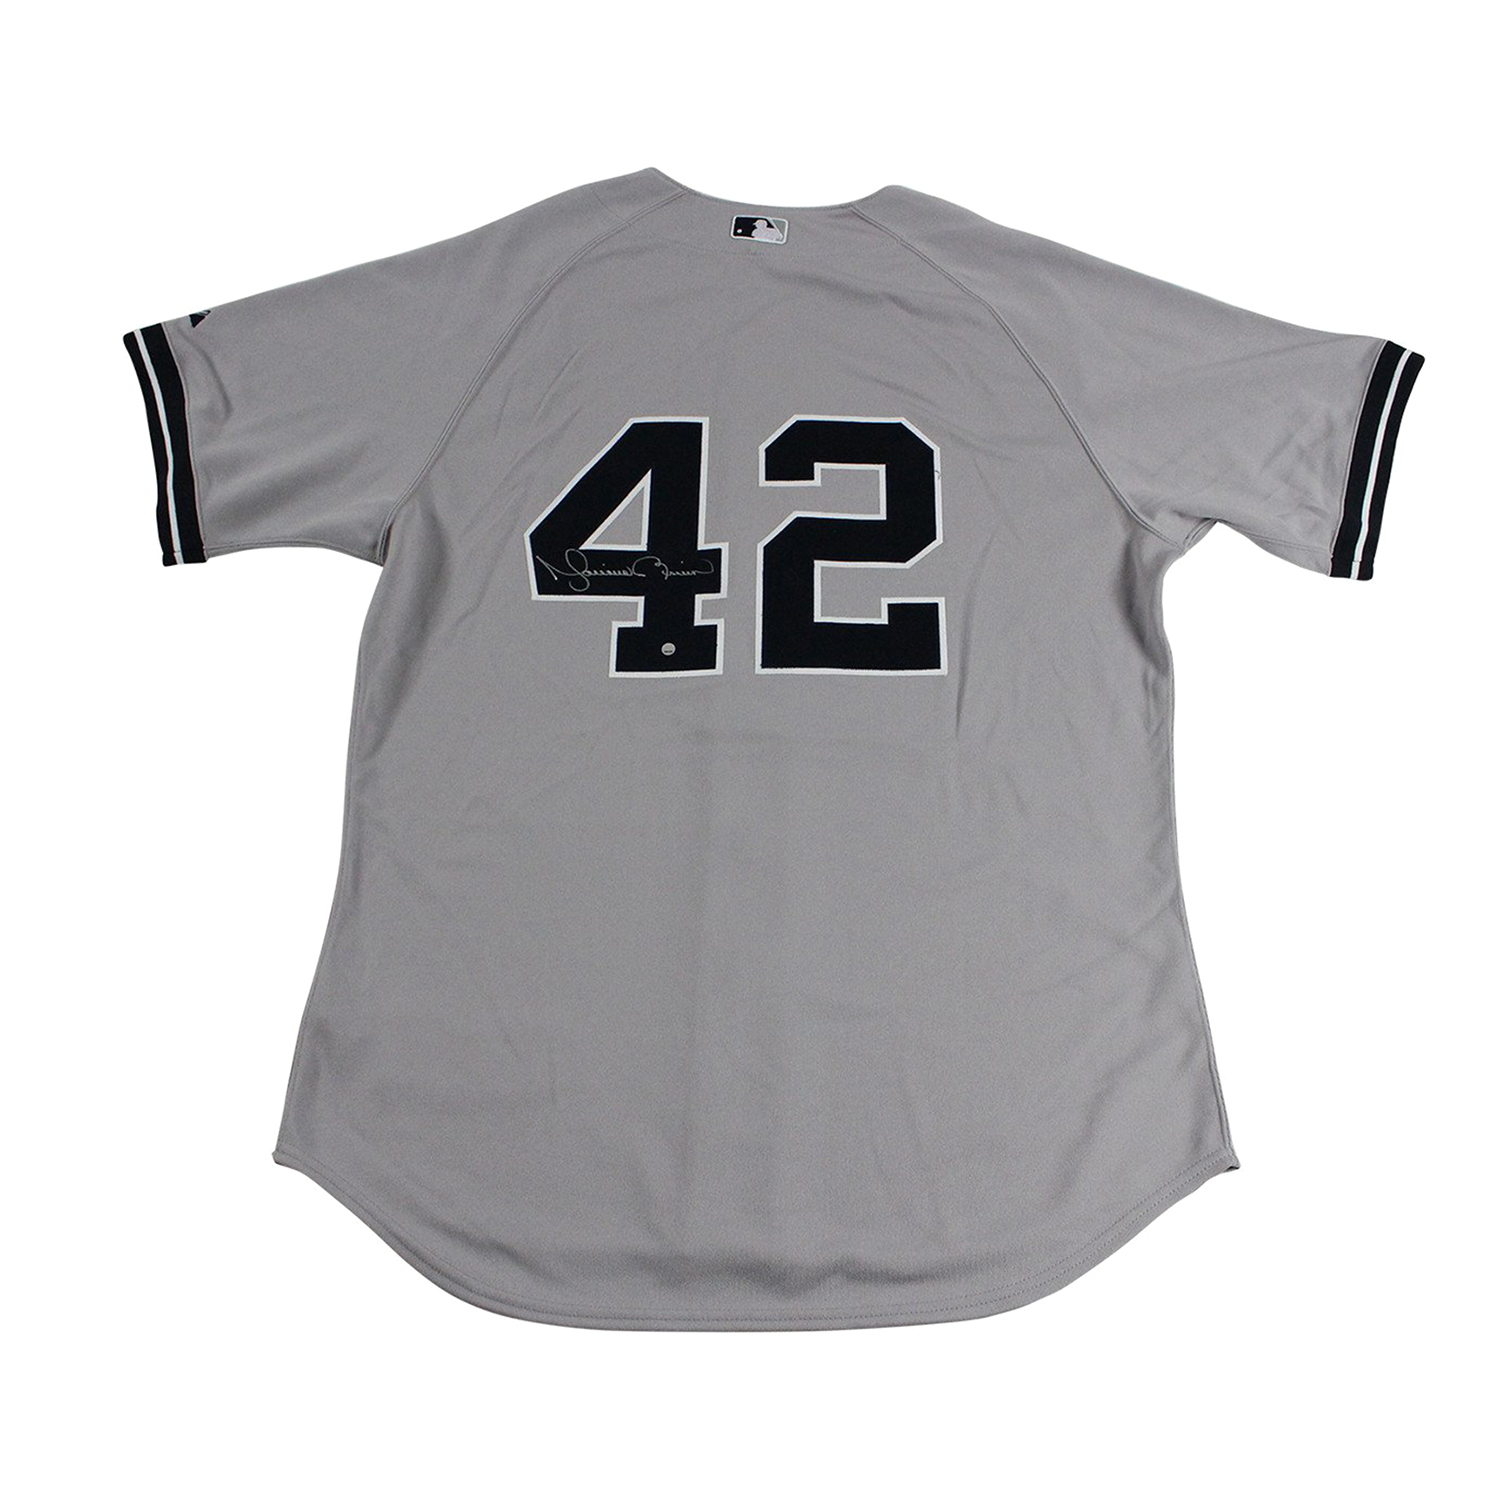 competitive price 6c550 3ee60 Signed Authentic Yankees Away Jersey // Mariano Rivera ...